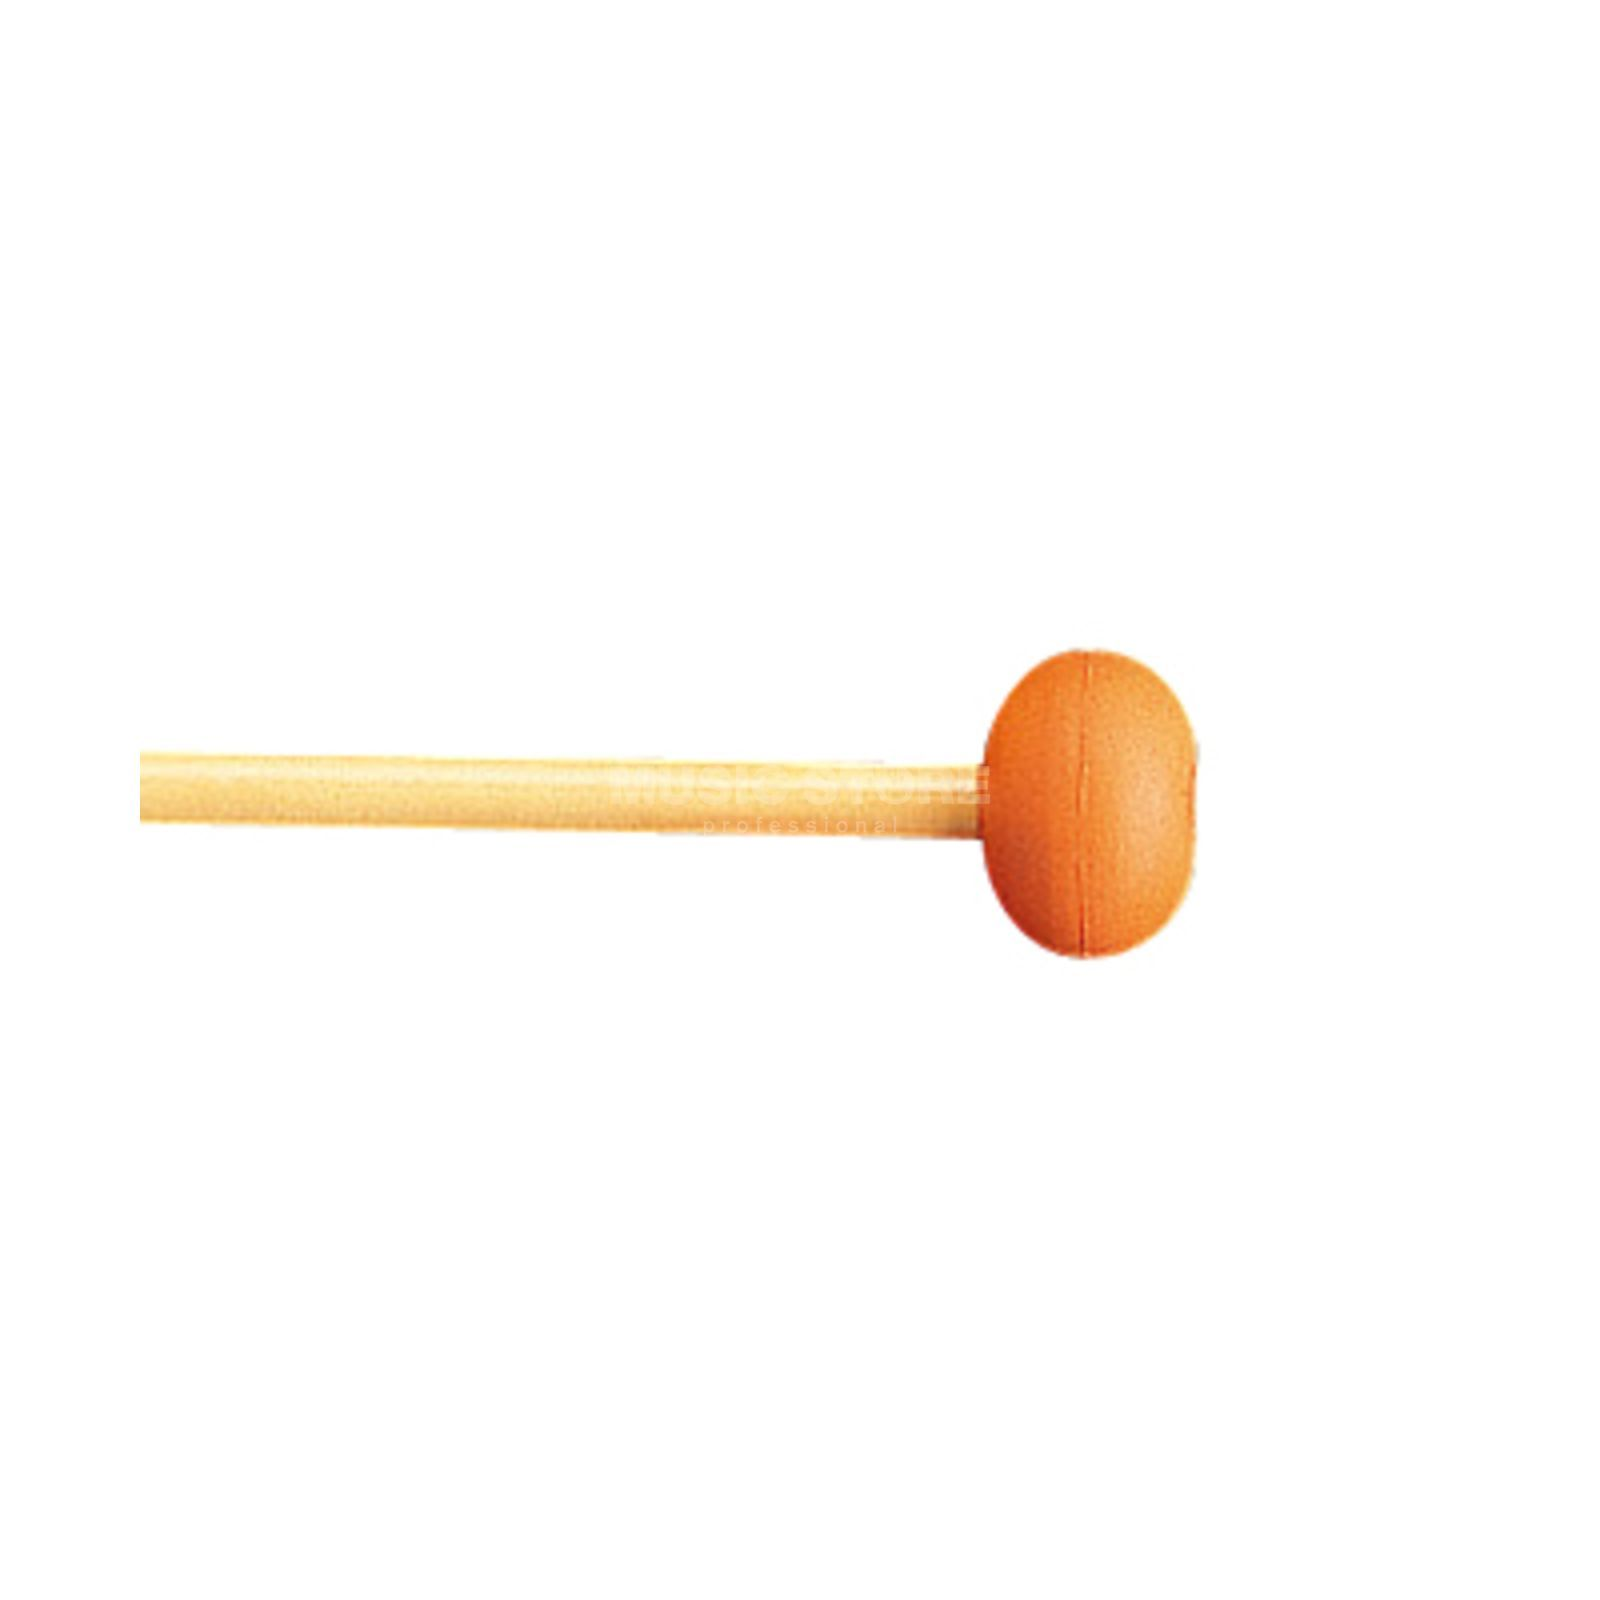 Yamaha Mallets MR-1120, medium hard, f. Marimbaphone Produktbillede